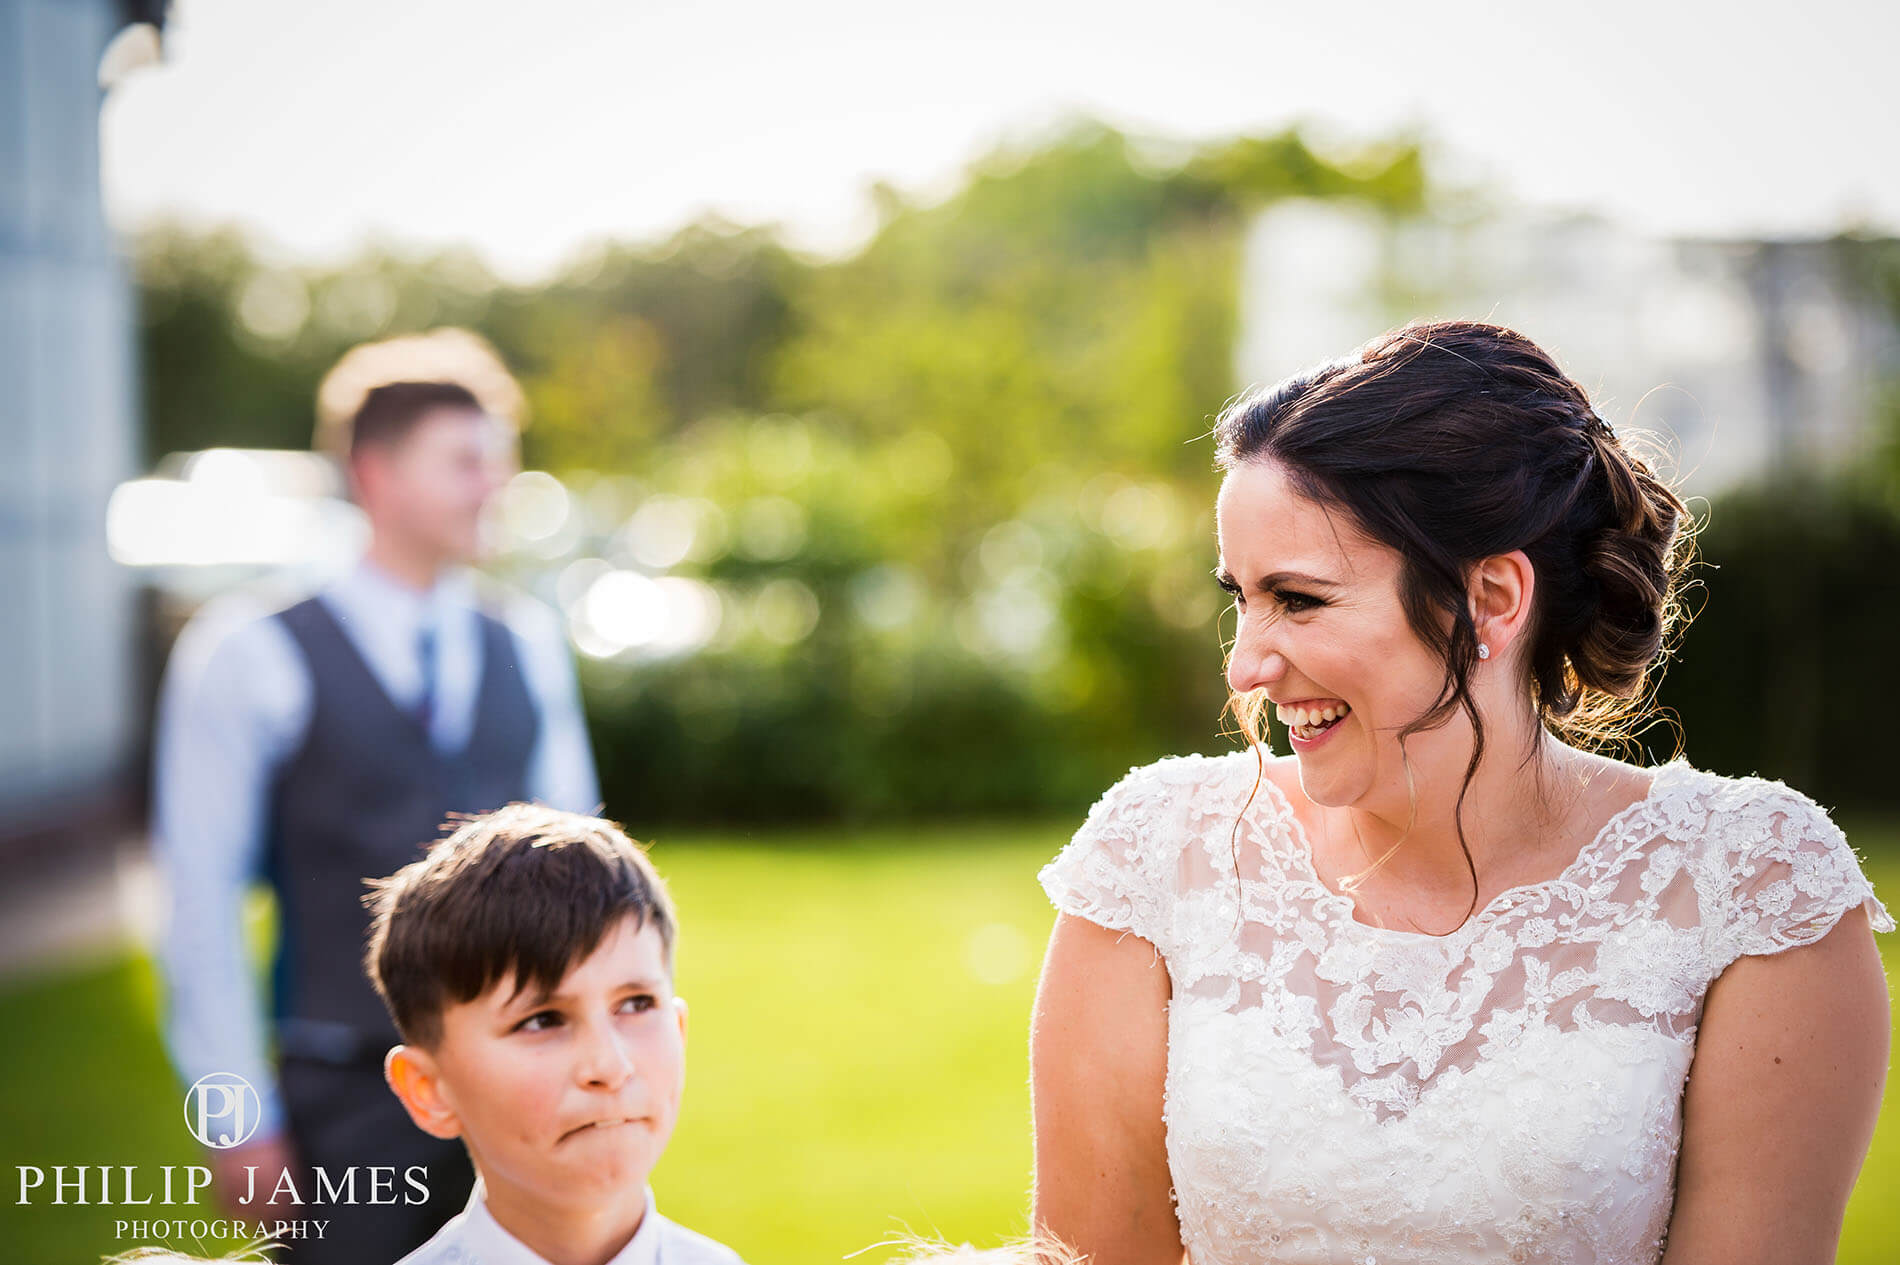 Redhouse Barn - Birmingham Wedding Photography by Philip James - Jessica & Adam 04.08.17